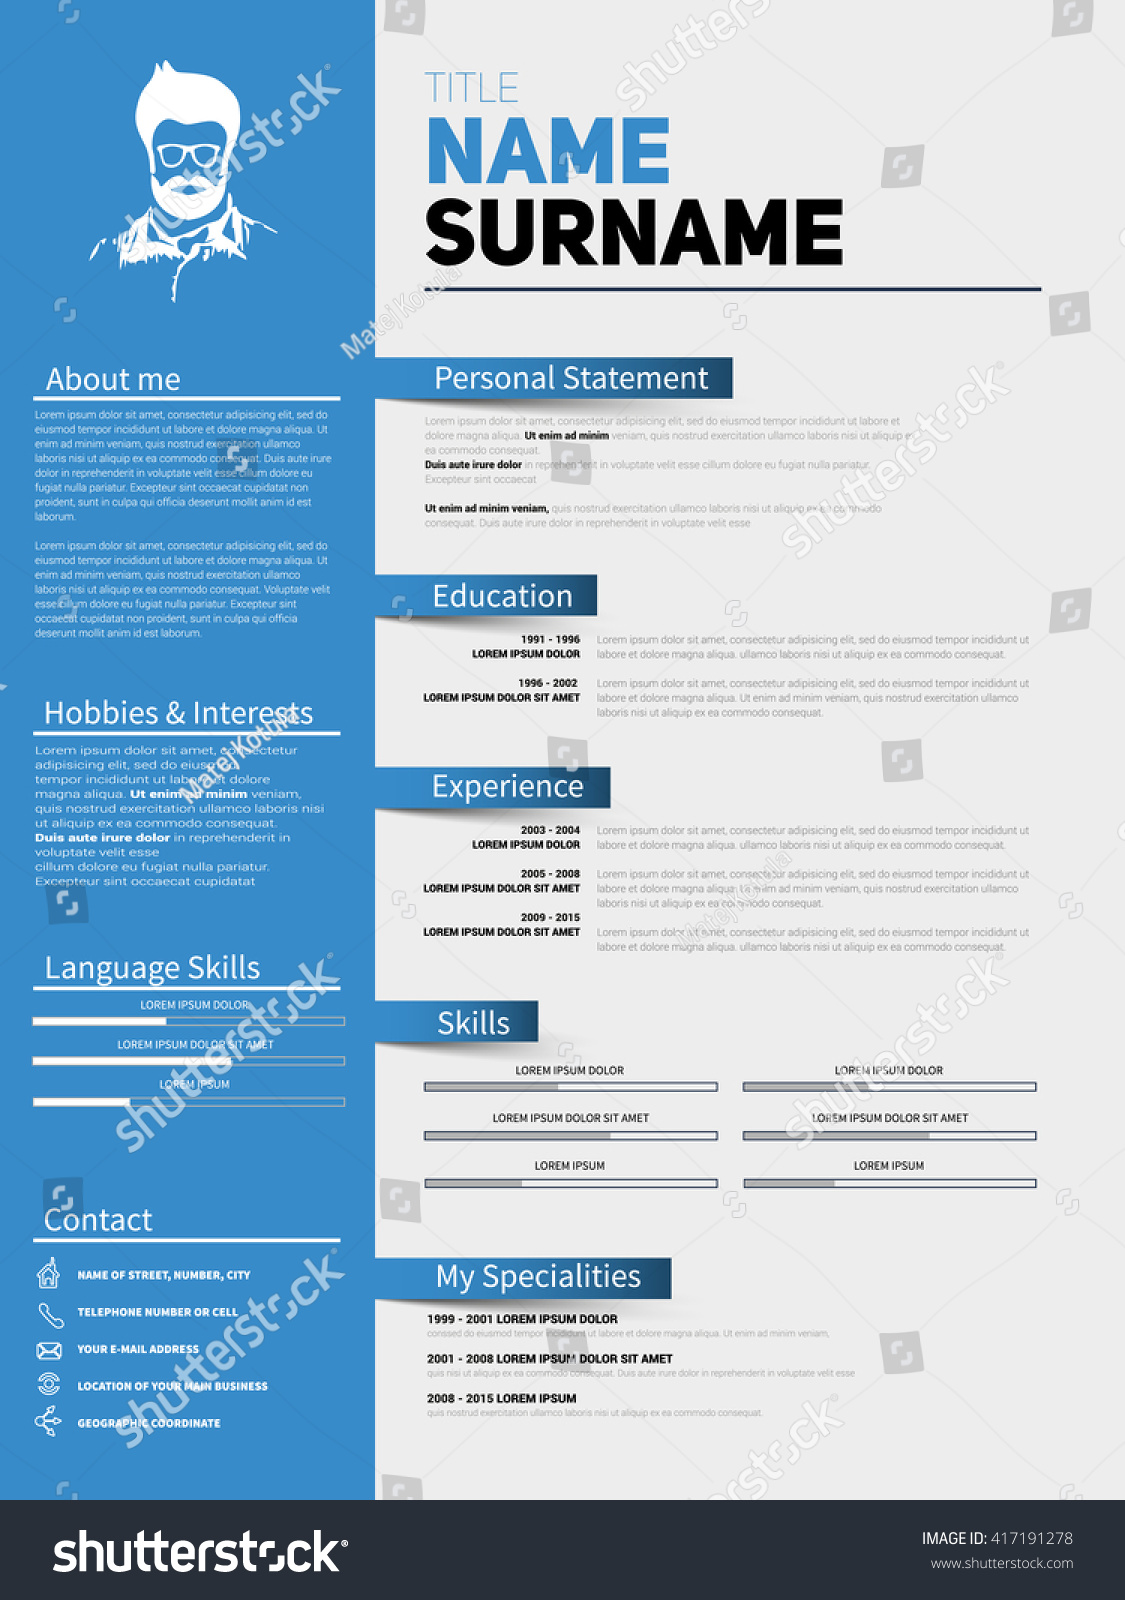 Resume Minimalist Cv Resume Template Simple Stock Vector Royalty